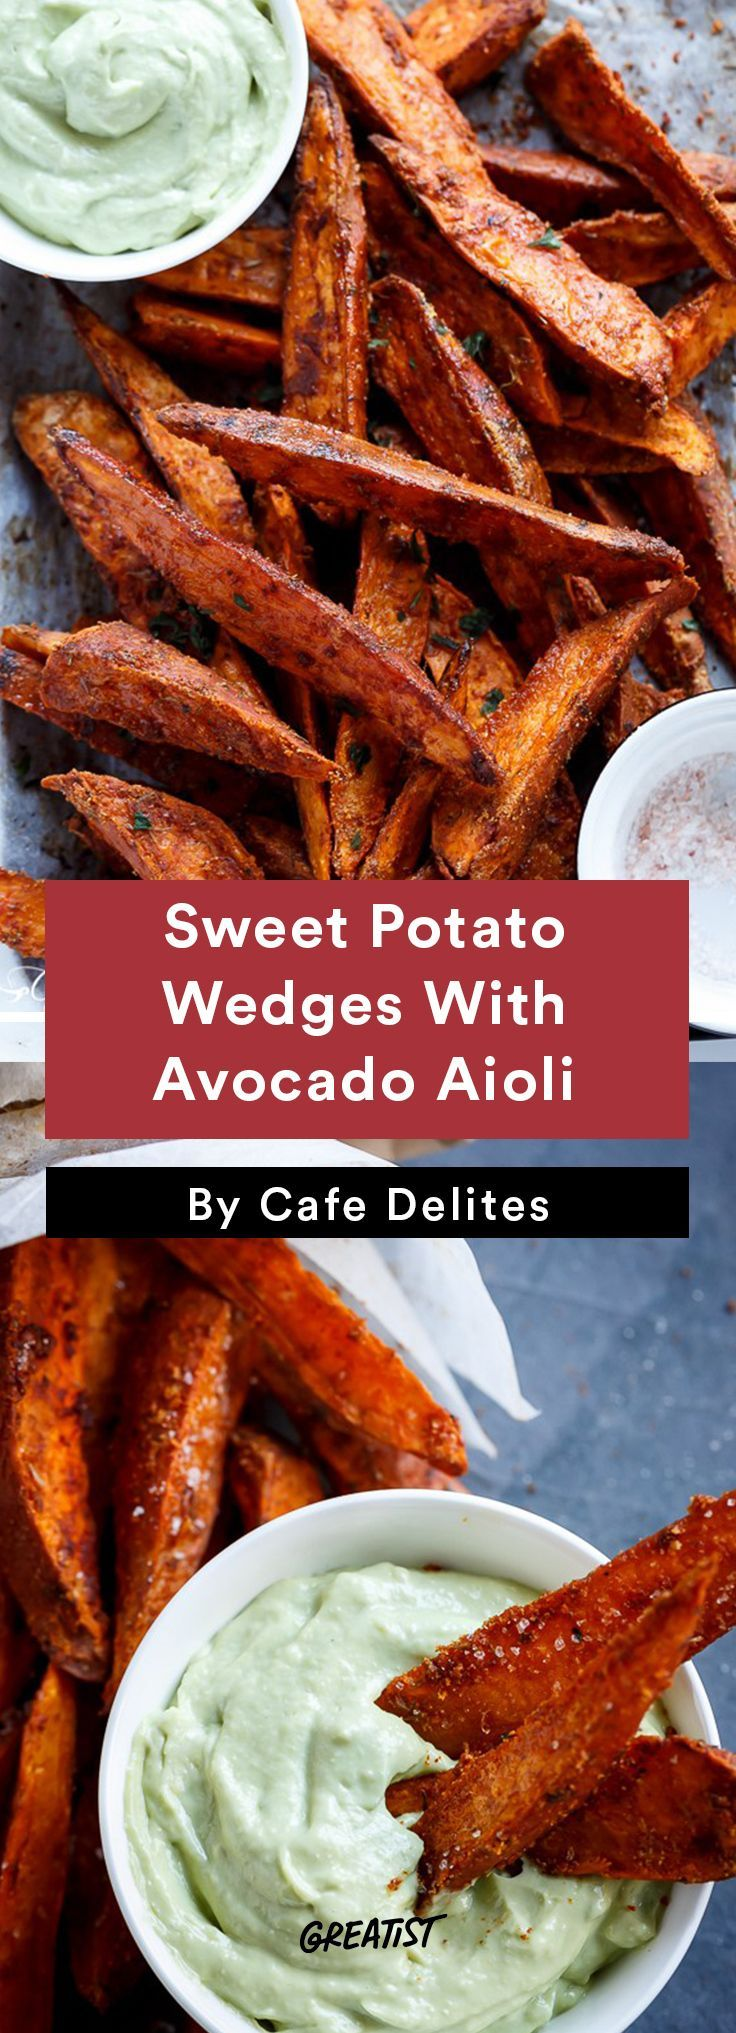 7 Healthier Recipes For Your Summer Cookout Sweet Potato Wedges